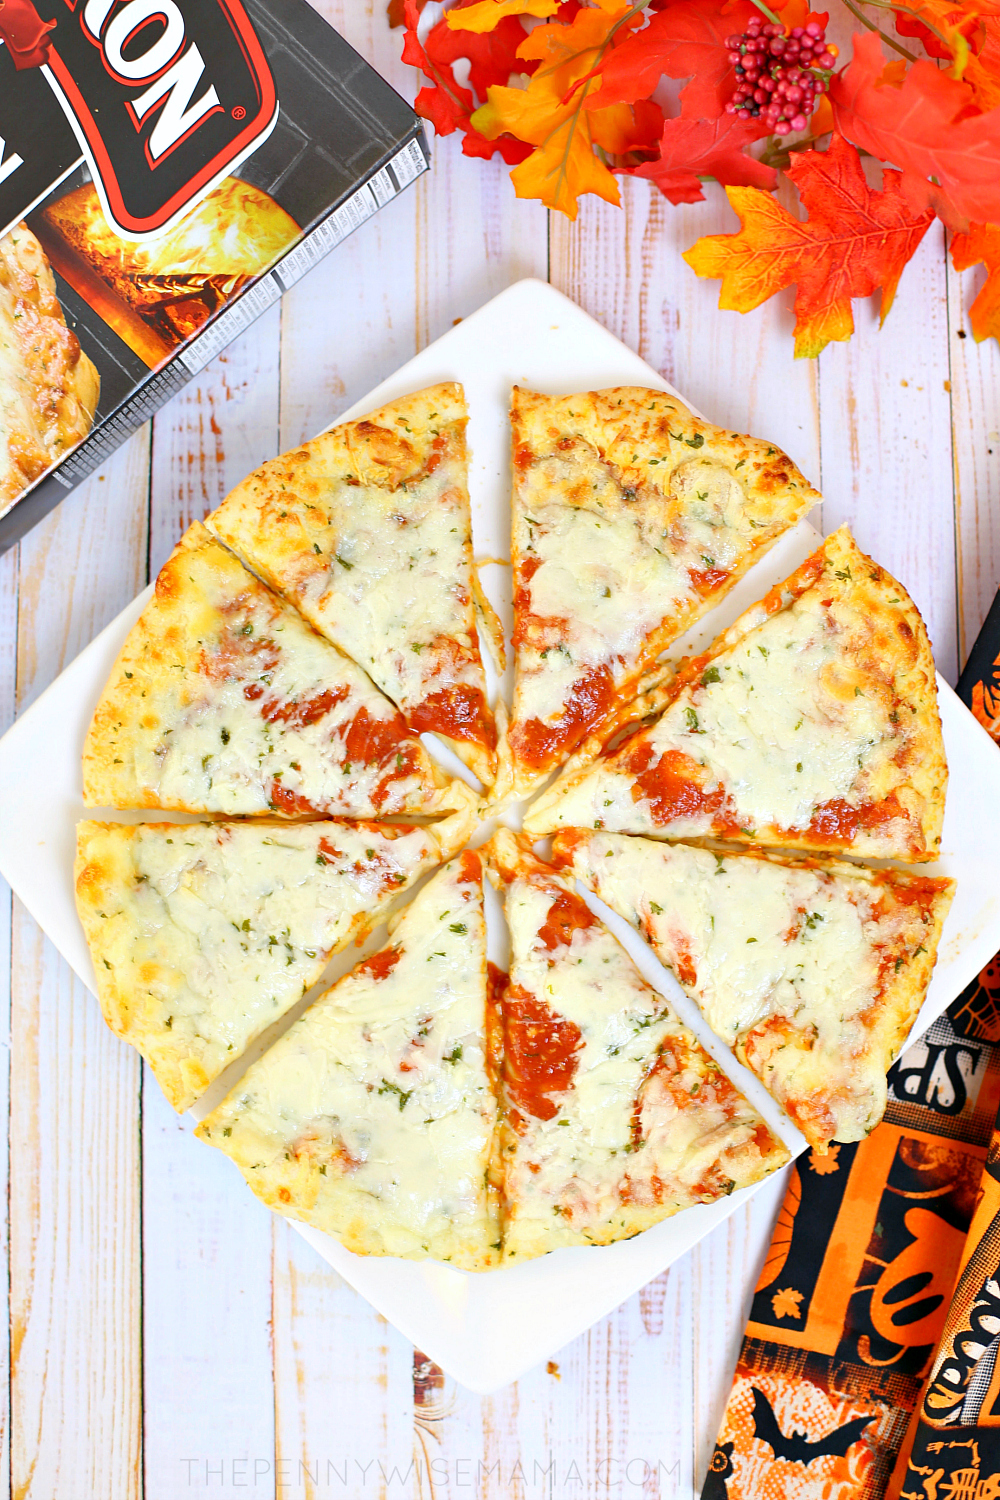 Red Baron Brick Oven Cheese Trio Pizza - A Quick & Easy Halloween Dinner